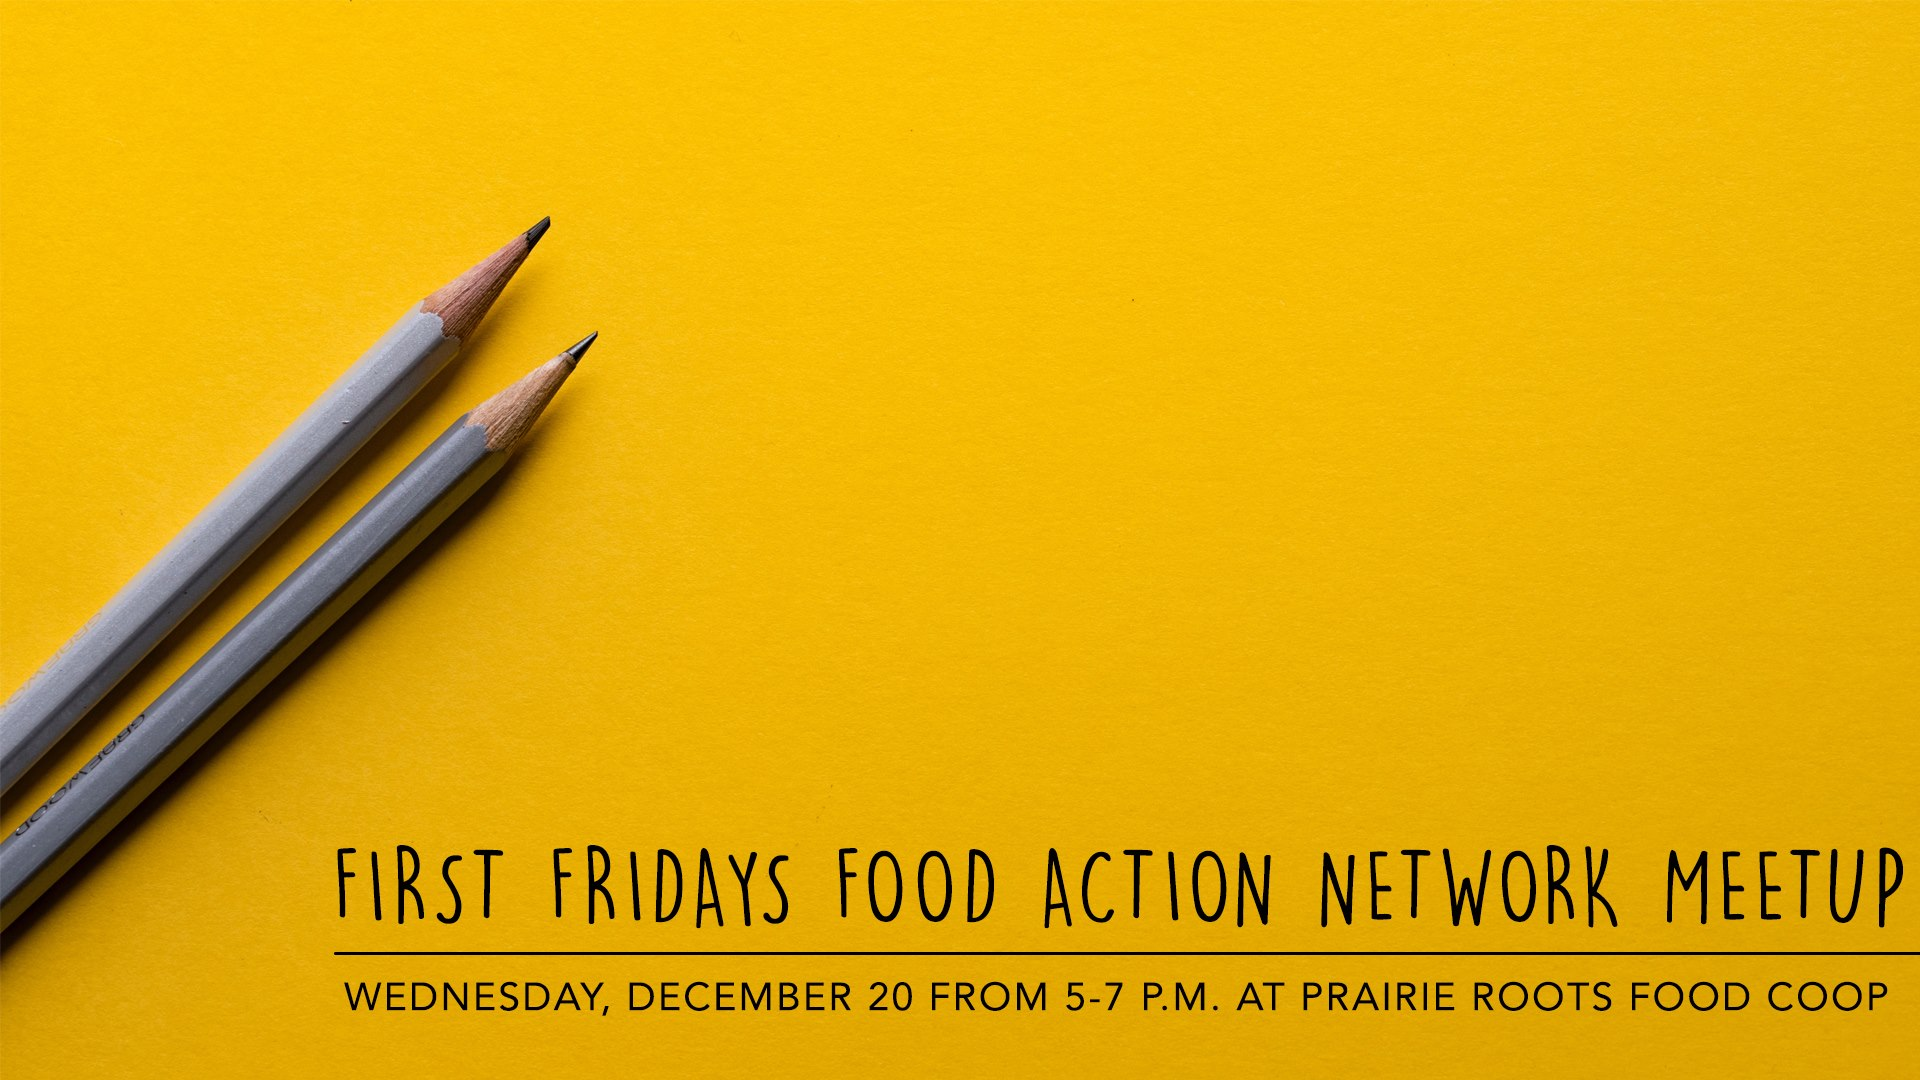 December 2017 -  First Fridays Food Action Network Meet-up  at Prairie Roots Food Co-op encouraged people to get involved + learn more about event series,  First Fridays at B.